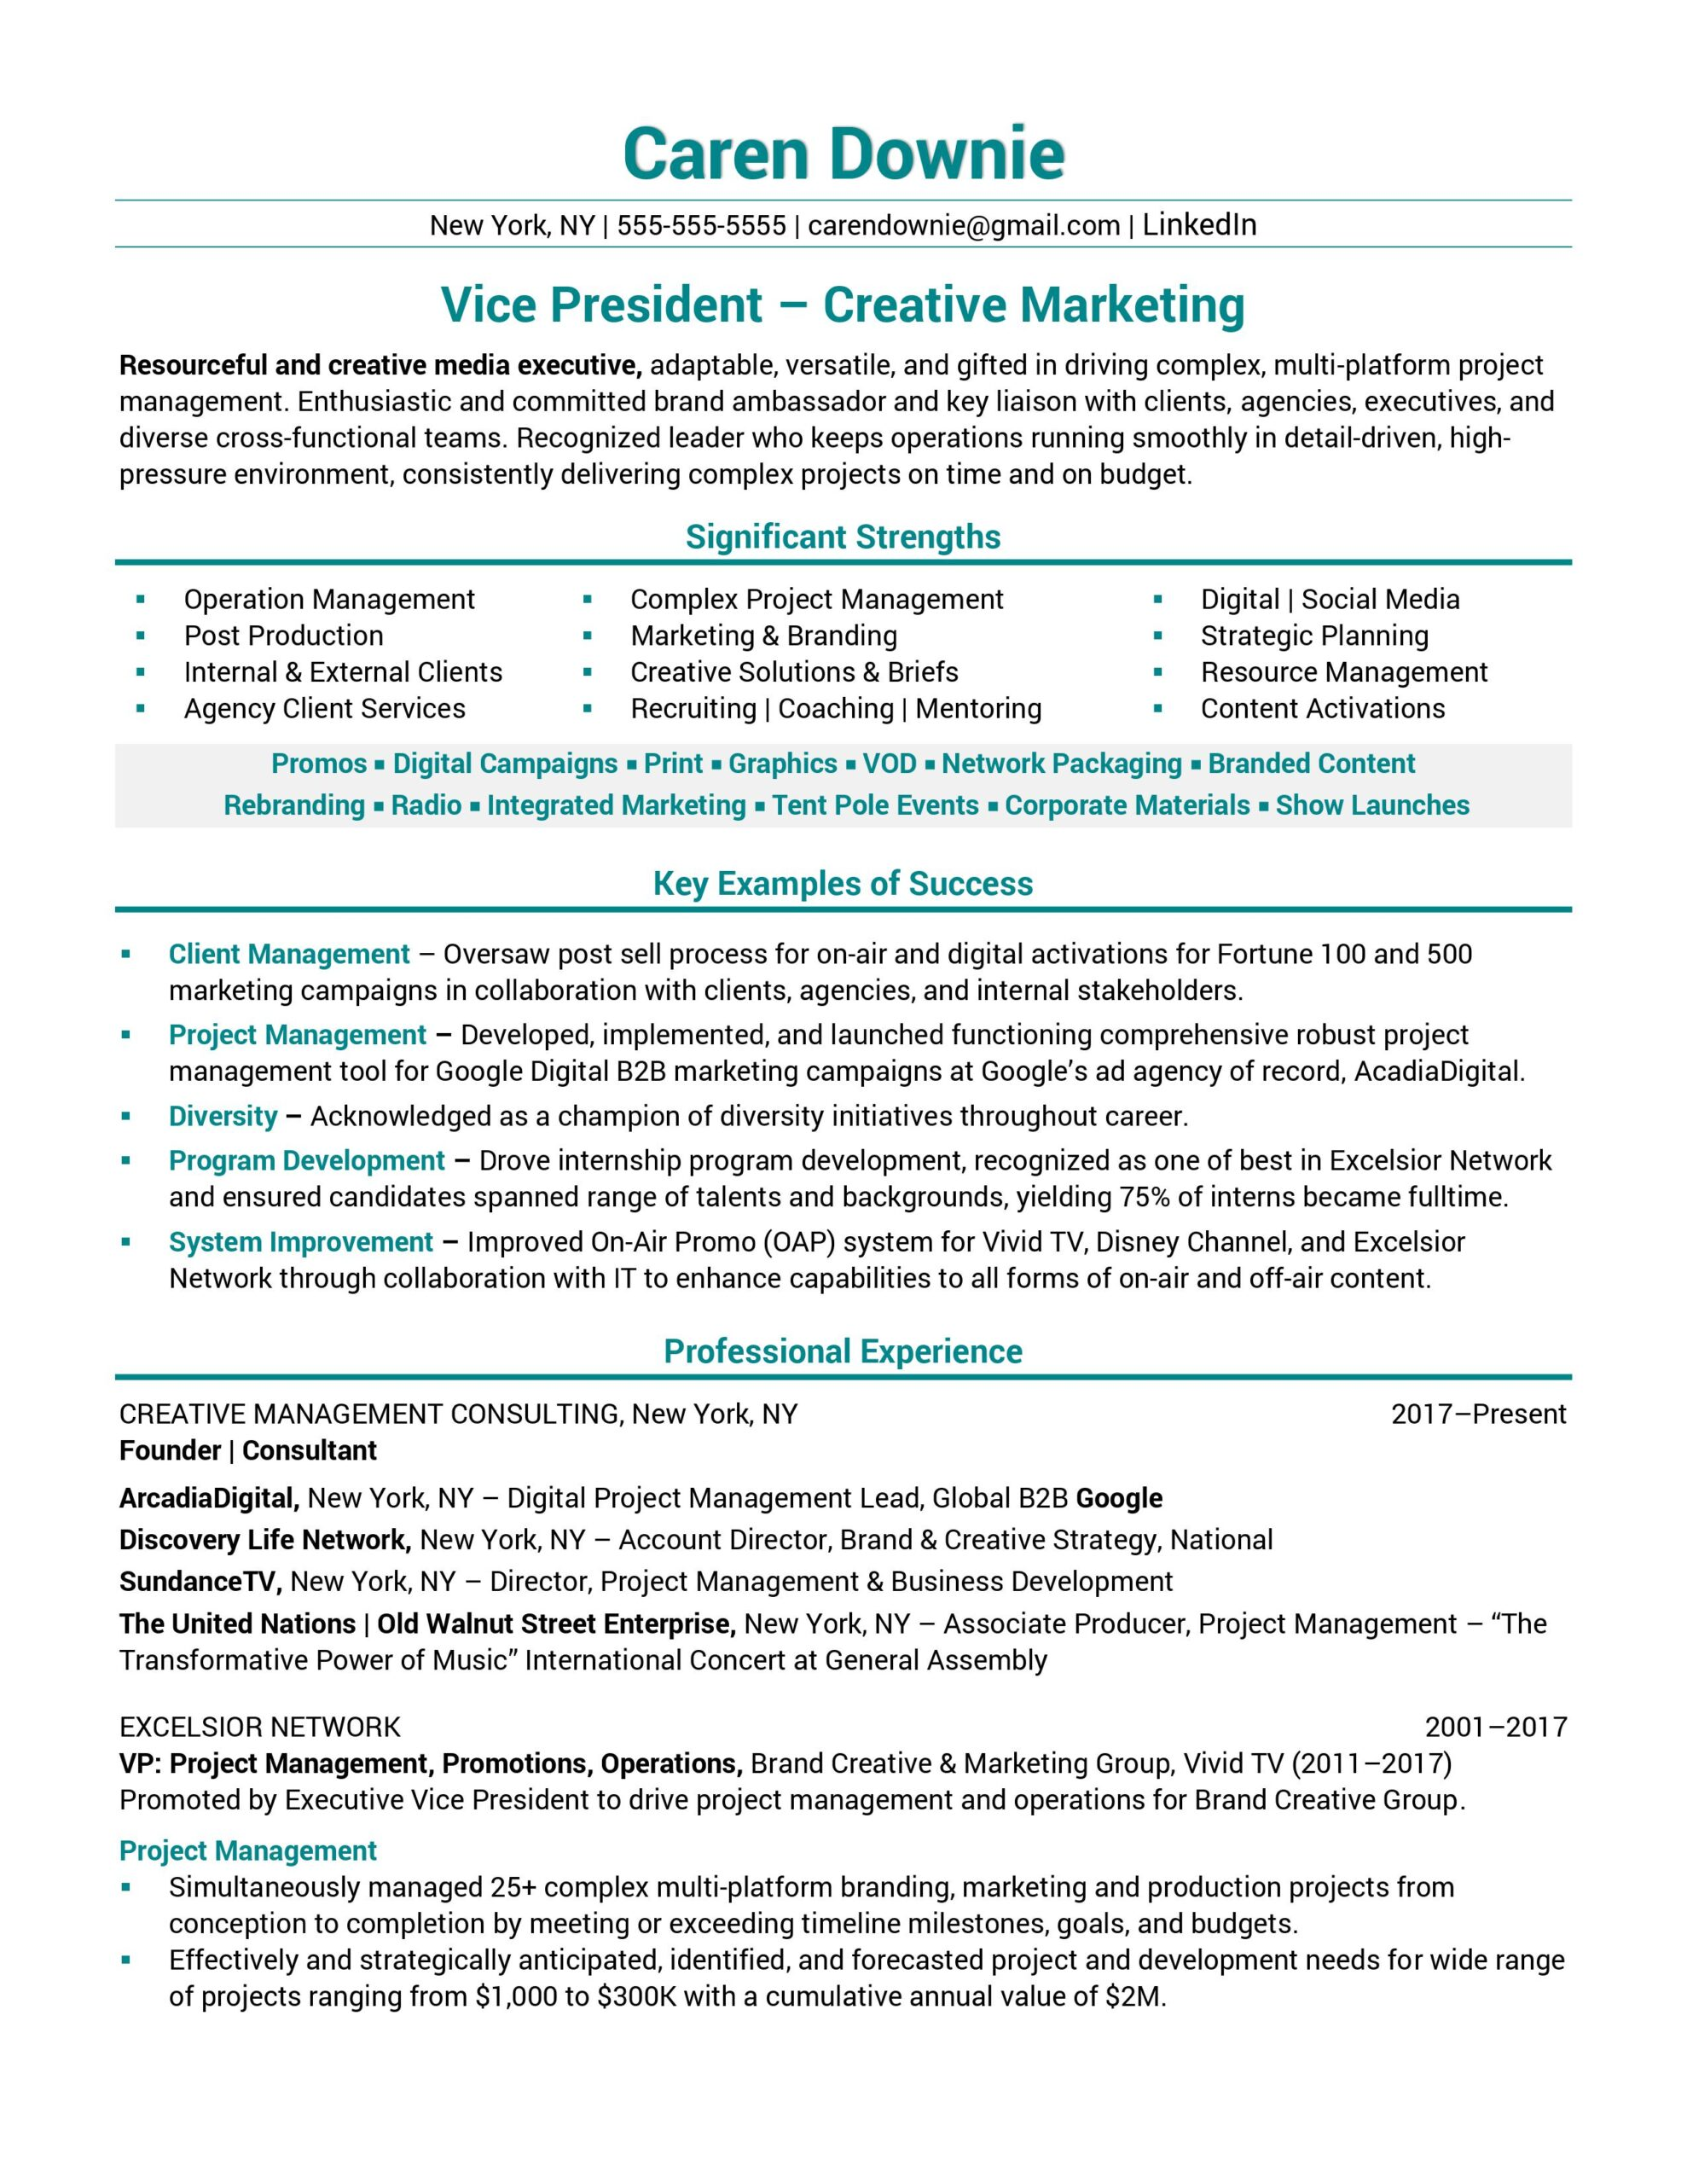 resume samples nations example vice president creative marketing sample does format Resume United Nations Resume Example